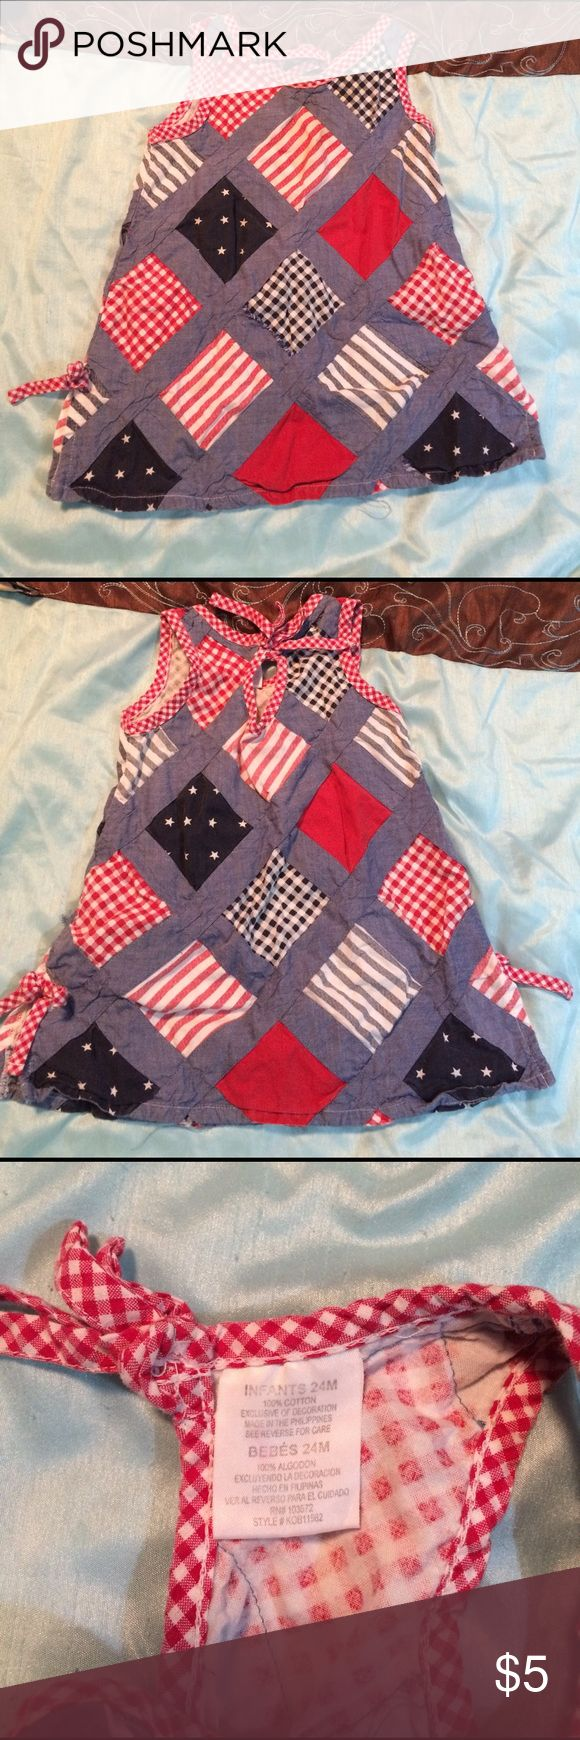 24 months patriotic tank top Great for fourth of July. Used but still cute. From smoke free home. Shirts & Tops Tank Tops